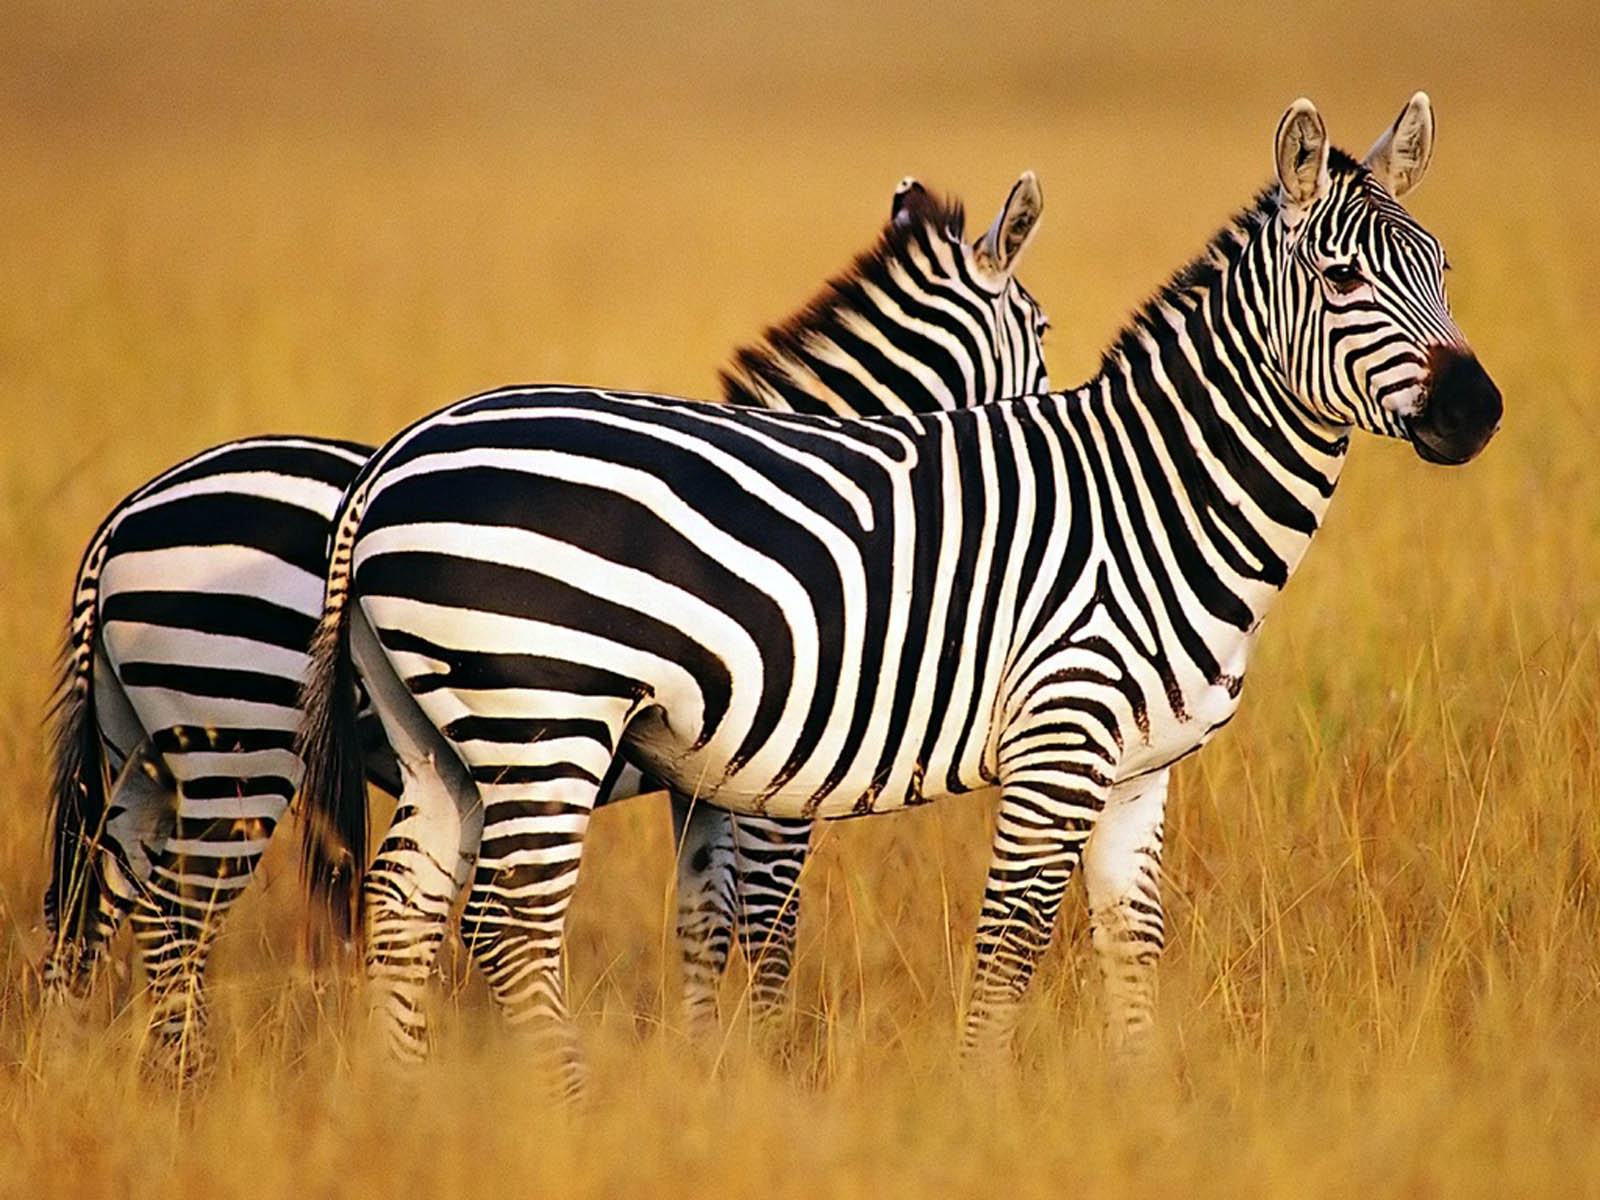 Http Wallpapers Xs Blogspot Com 2013 01 Zebra Wallpapers Html